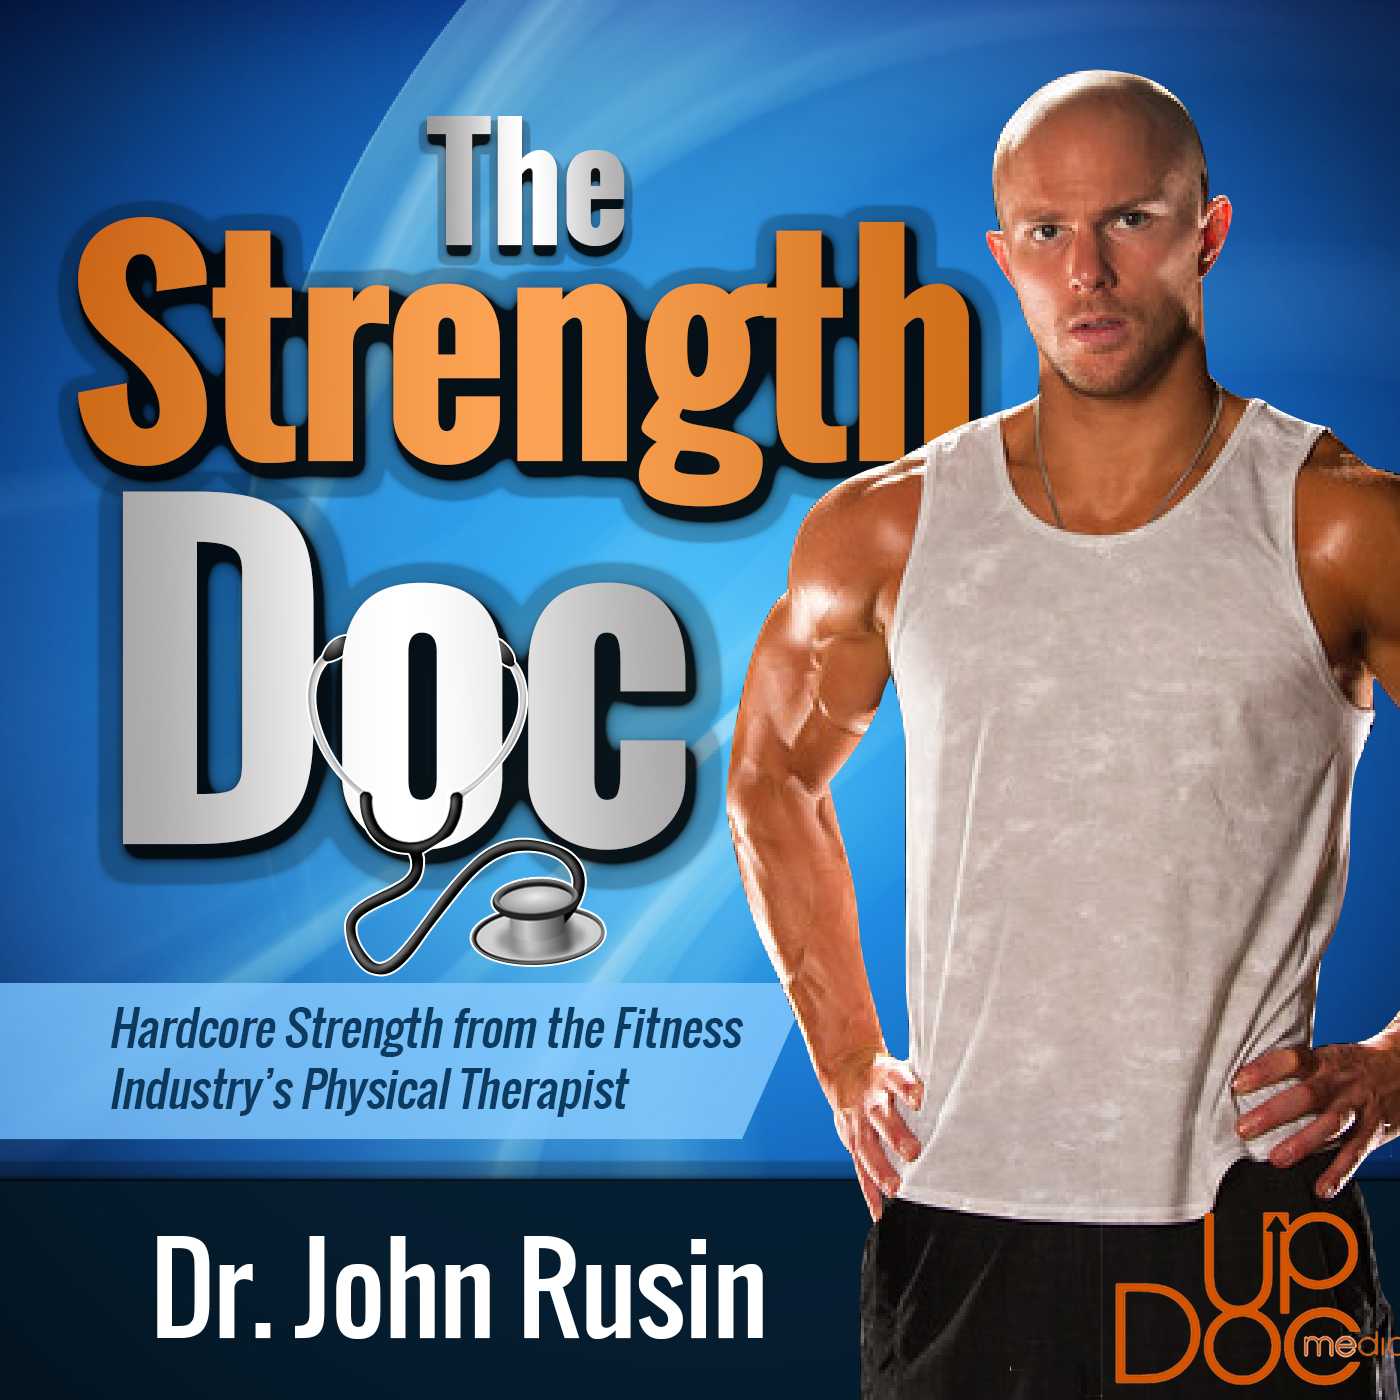 The Strength Doc